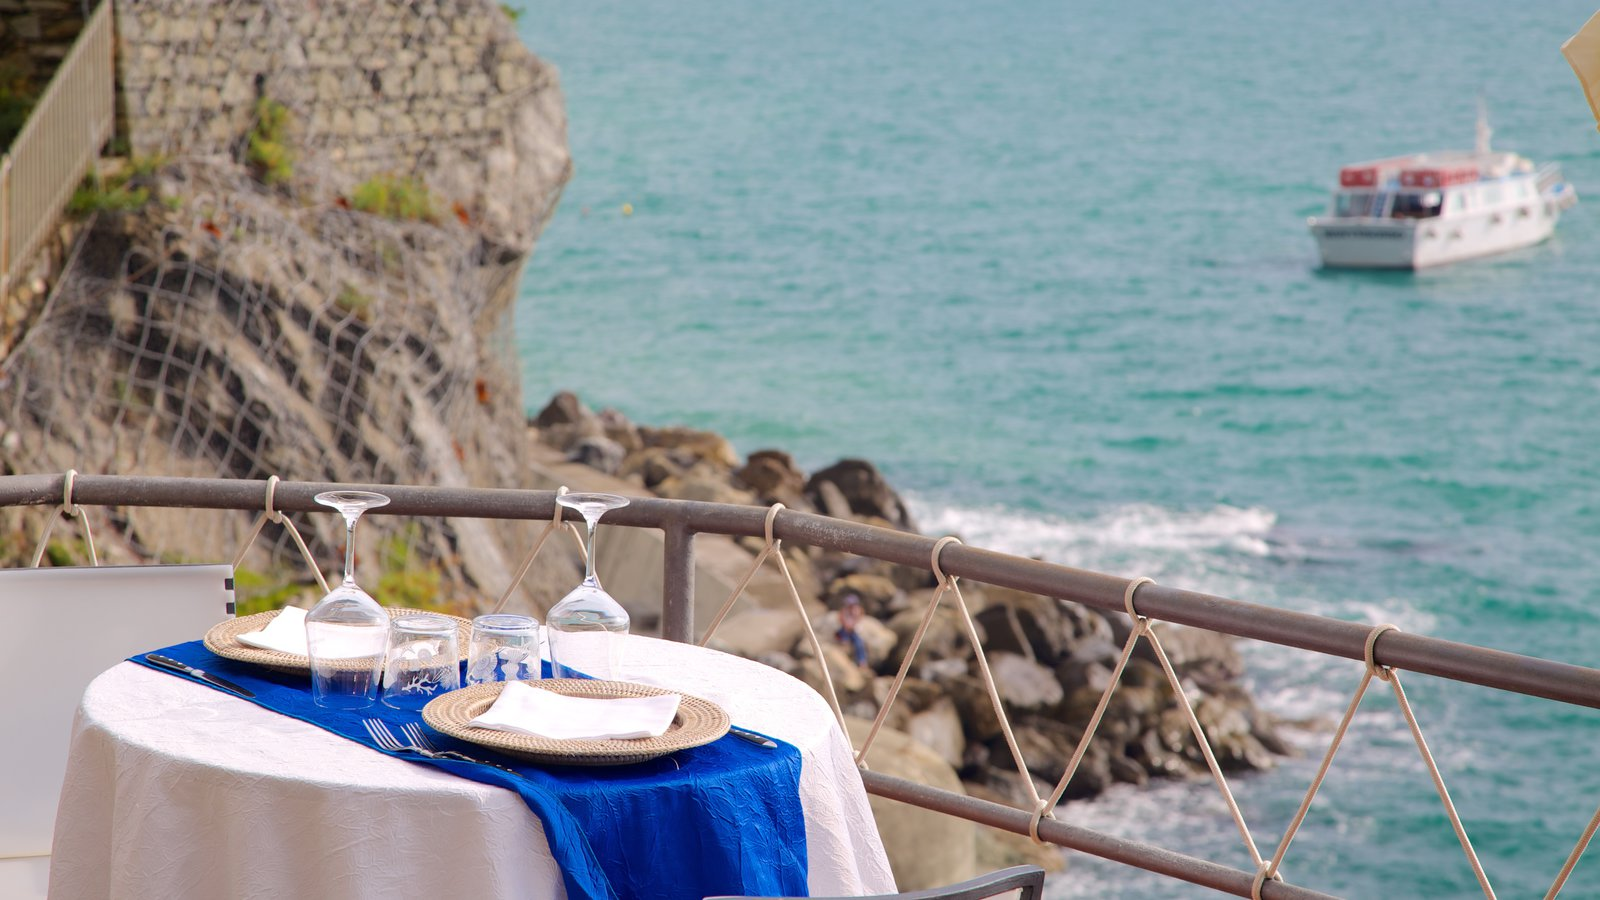 Monterosso al Mare which includes dining out, rugged coastline and boating